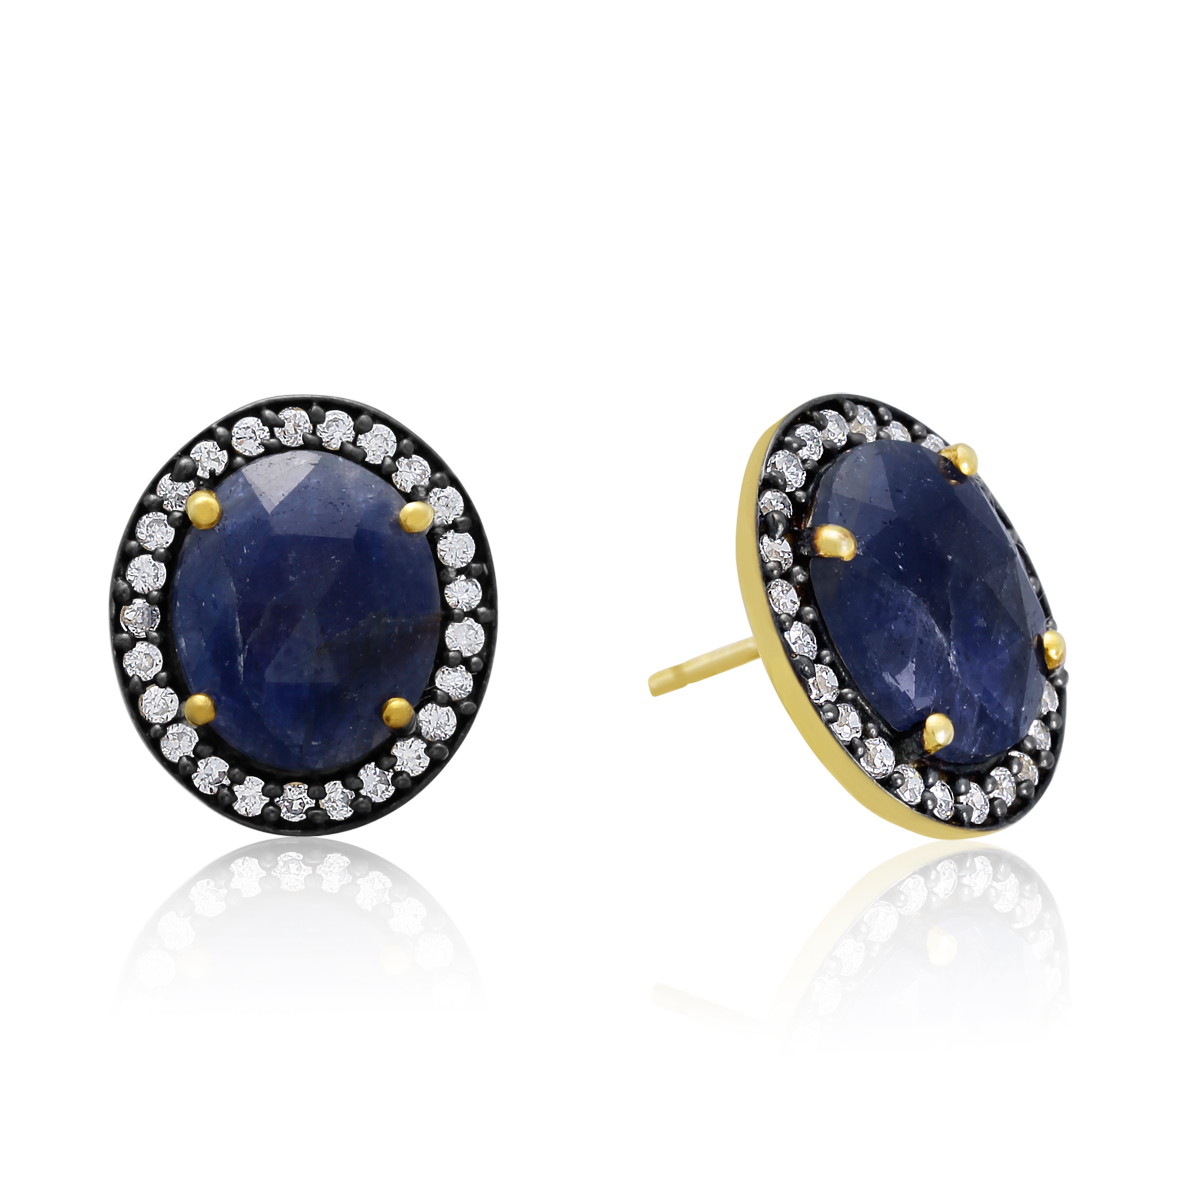 20 Carat Natural Blue Sapphire  Earrings In 18 Karat Gold Over Silver